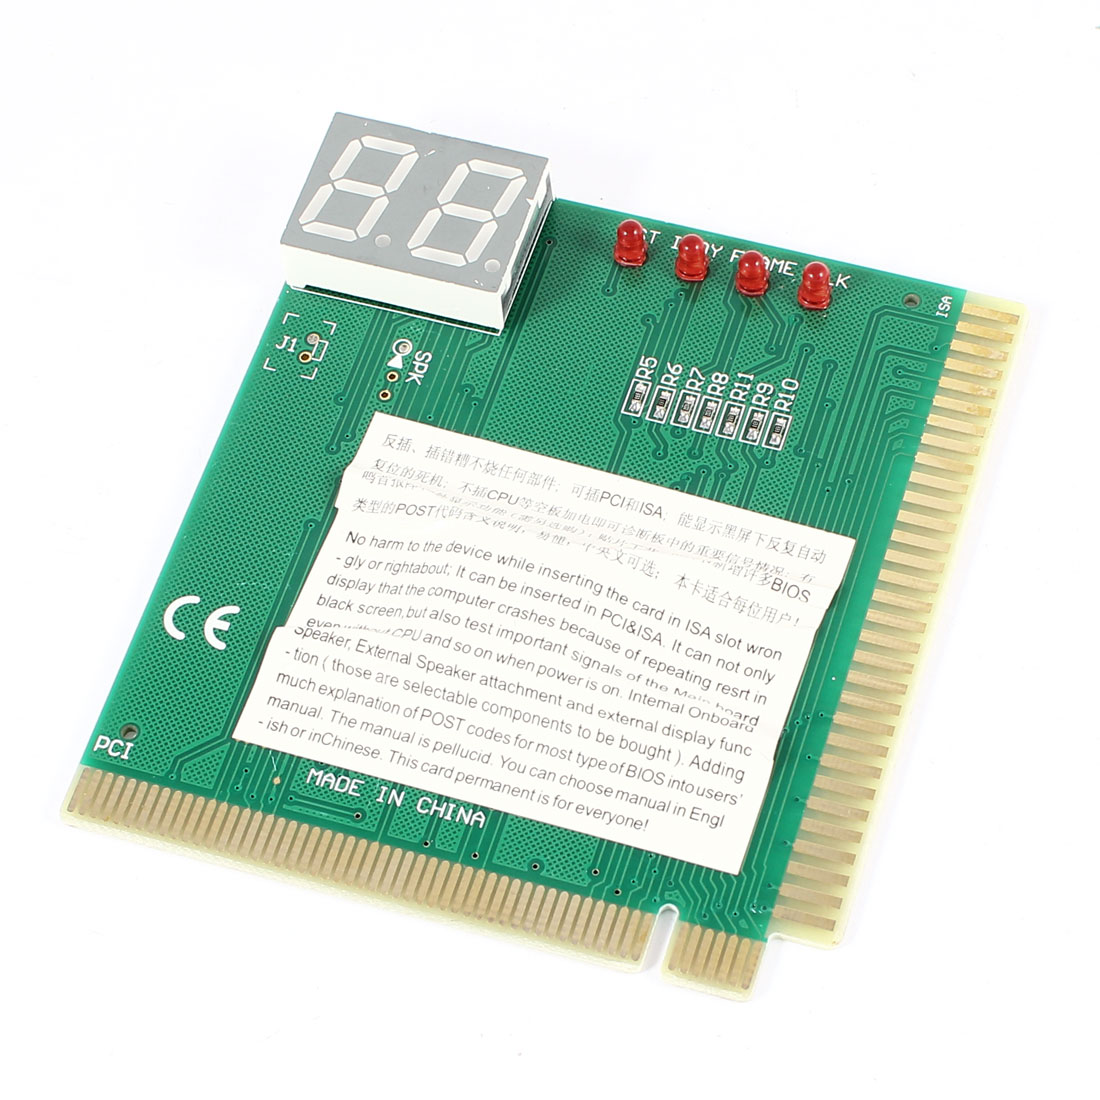 PC Computer 2 Digit PCI ISA Motherboard Mainboard Test Analyzer Diagnostic Debug POST Card